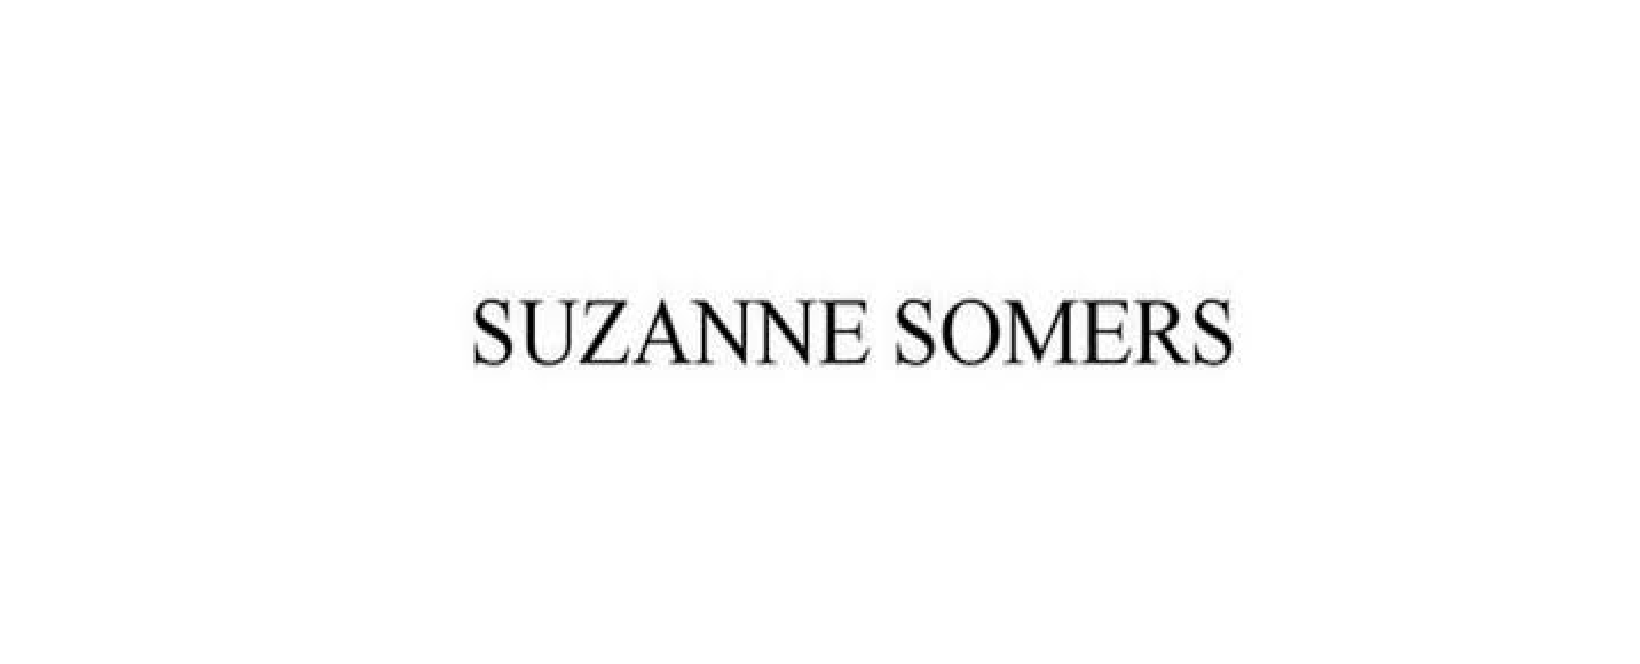 Suzanne Somers Discount Code 2021